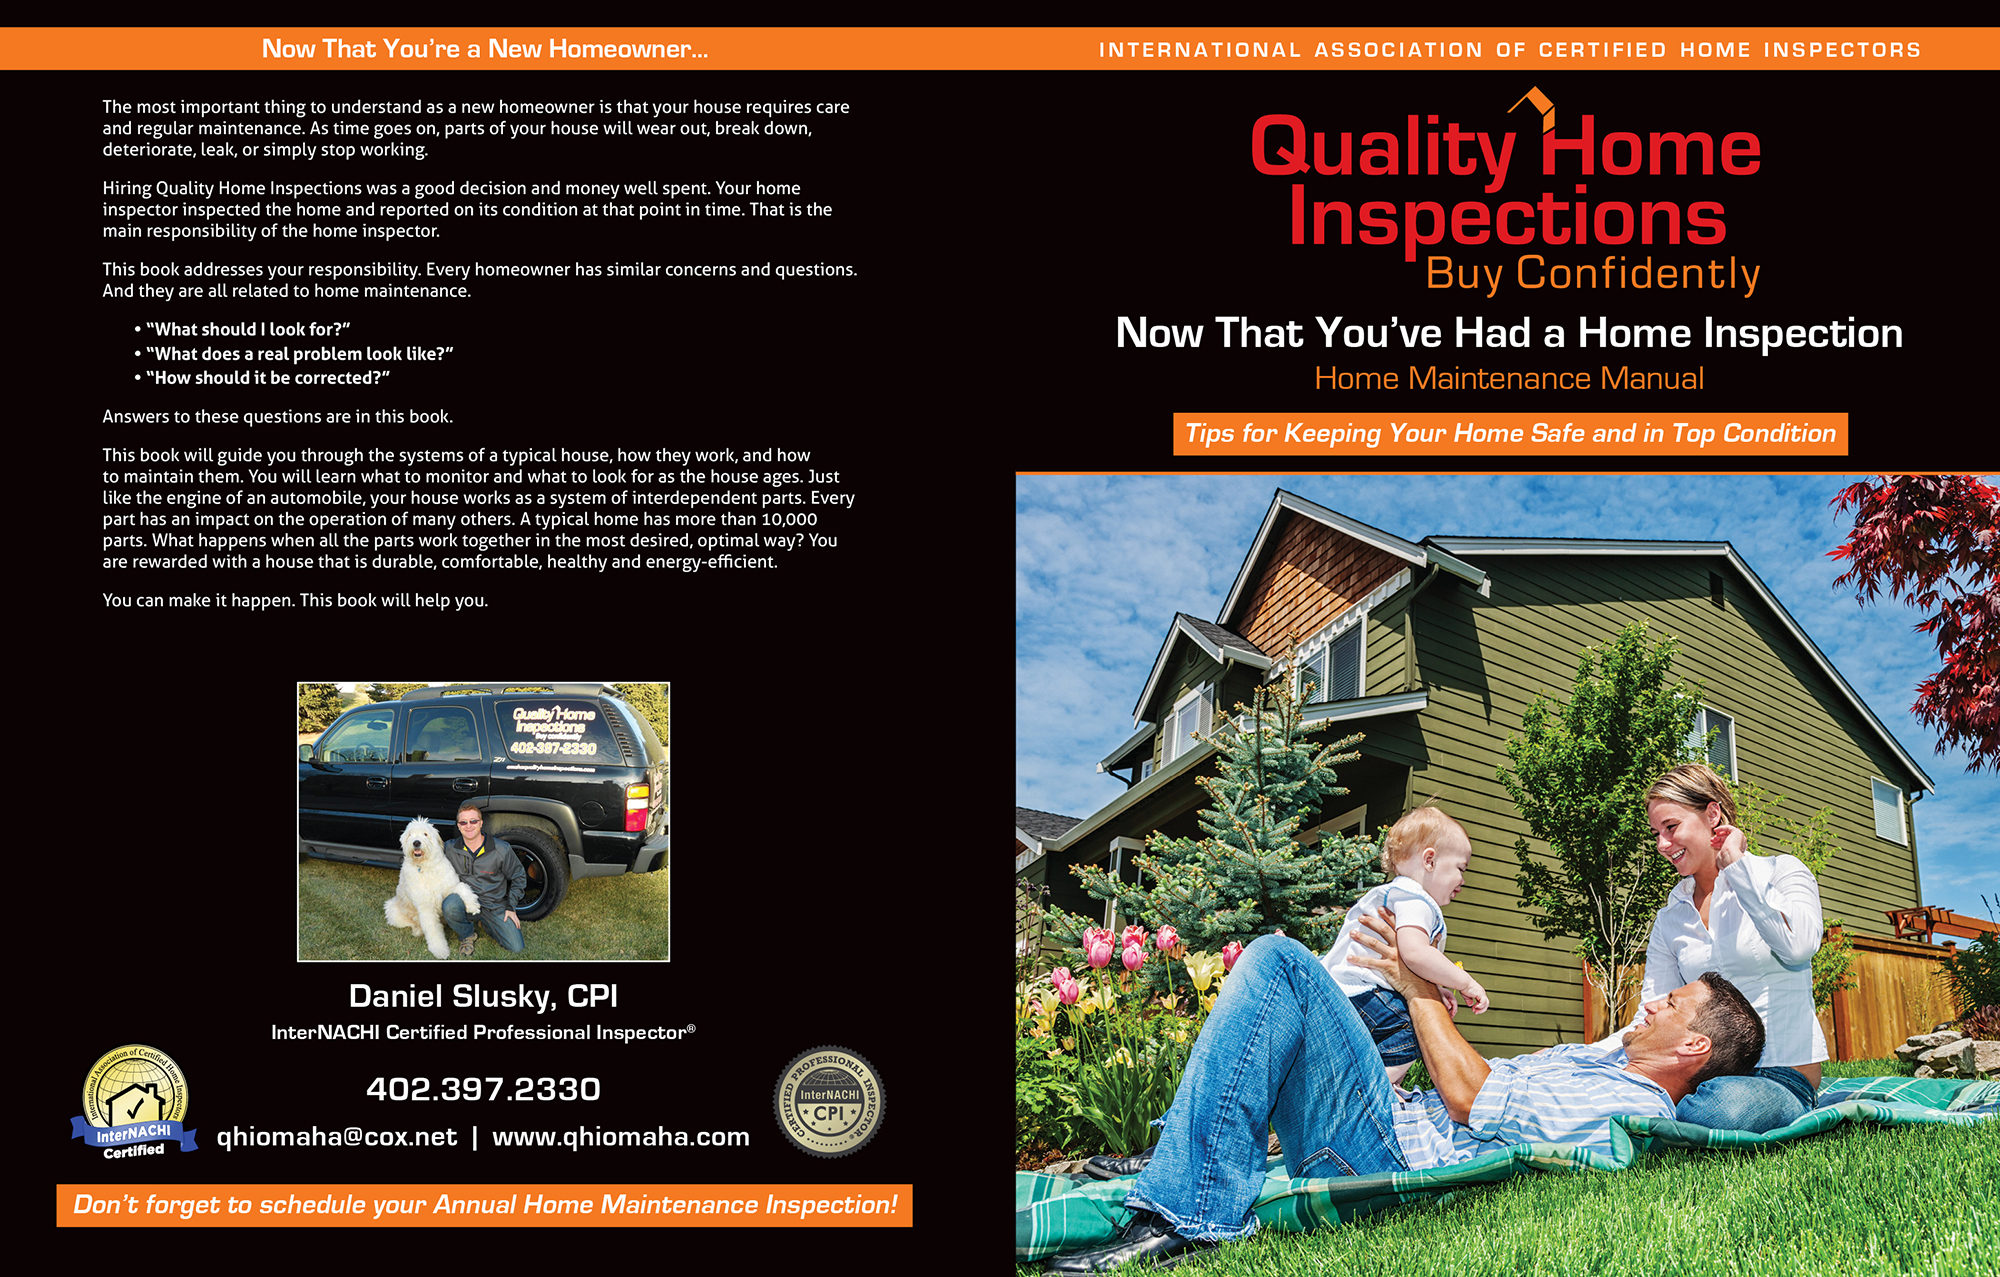 custom home maintenance book for quality home inspections - inspection gallery